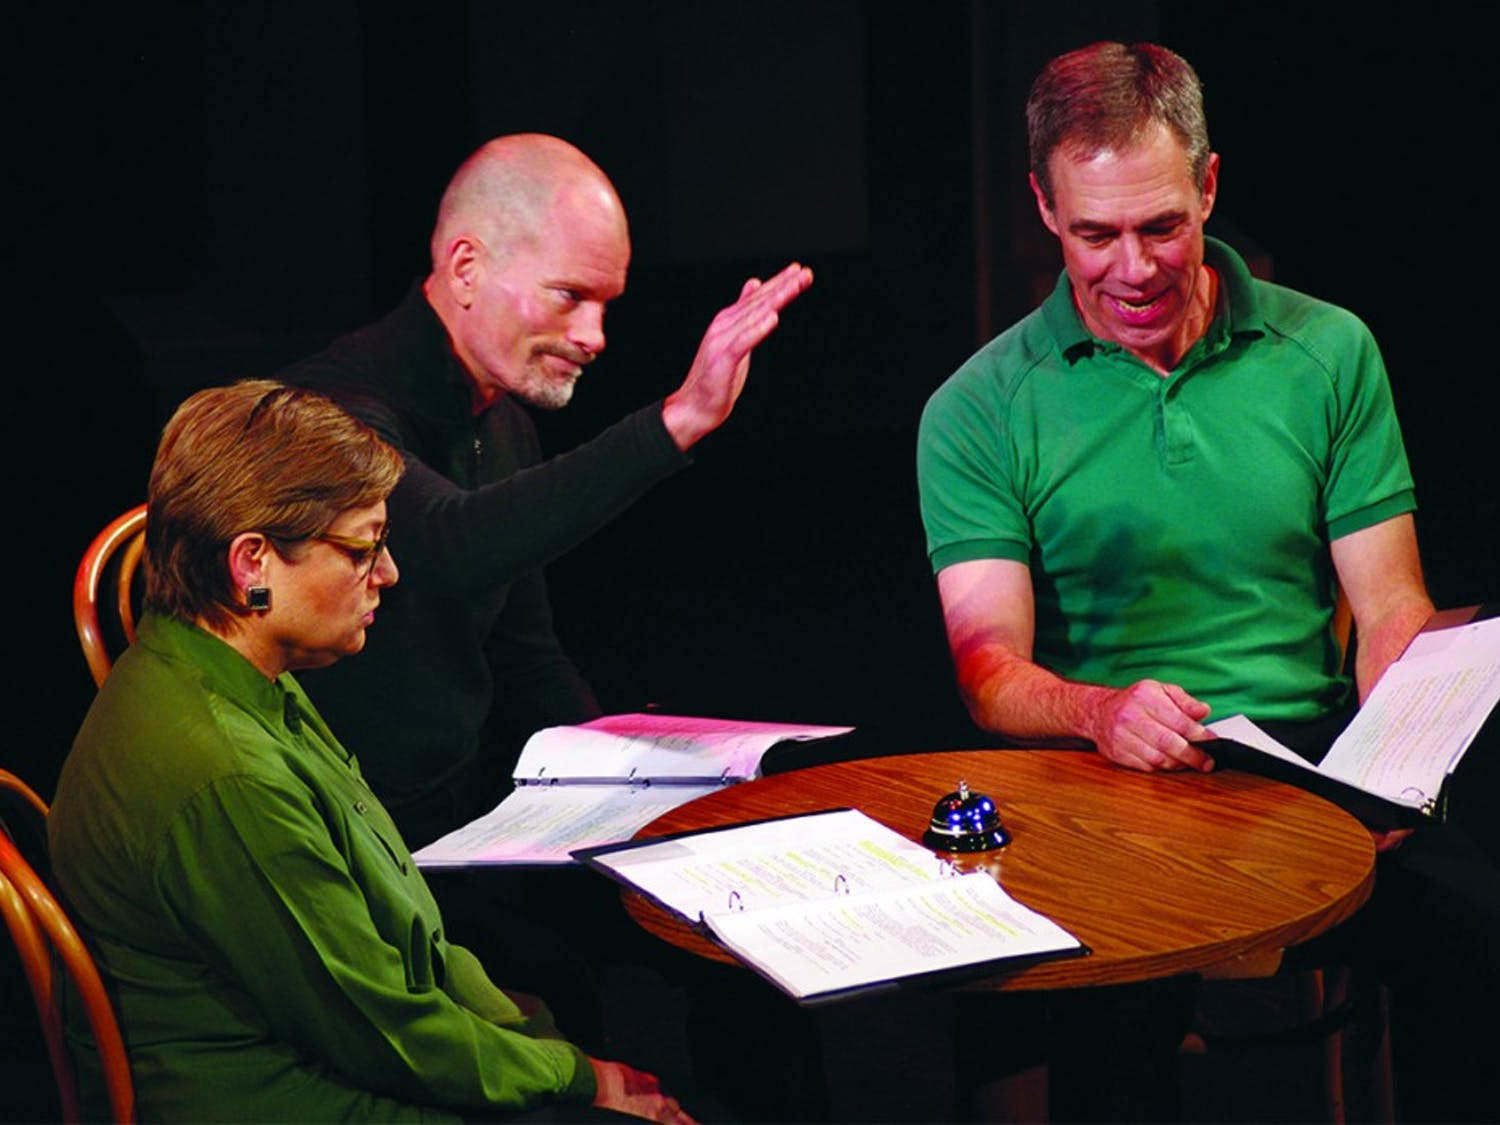 """Jim Bullock, a member of the graduating class in the Writing for the Screen and Stage Program at UNC, wrote """"When the Bell Rights, You Shut the **** Up,"""" a one-act play that was part of """"Long Story Shorts."""" This was performed at the Center for Dramatic Art. The actors present are Elisabeth Lewis Corley (left), John Paul Middlesworth (right), and Gren Hohn (middle)."""